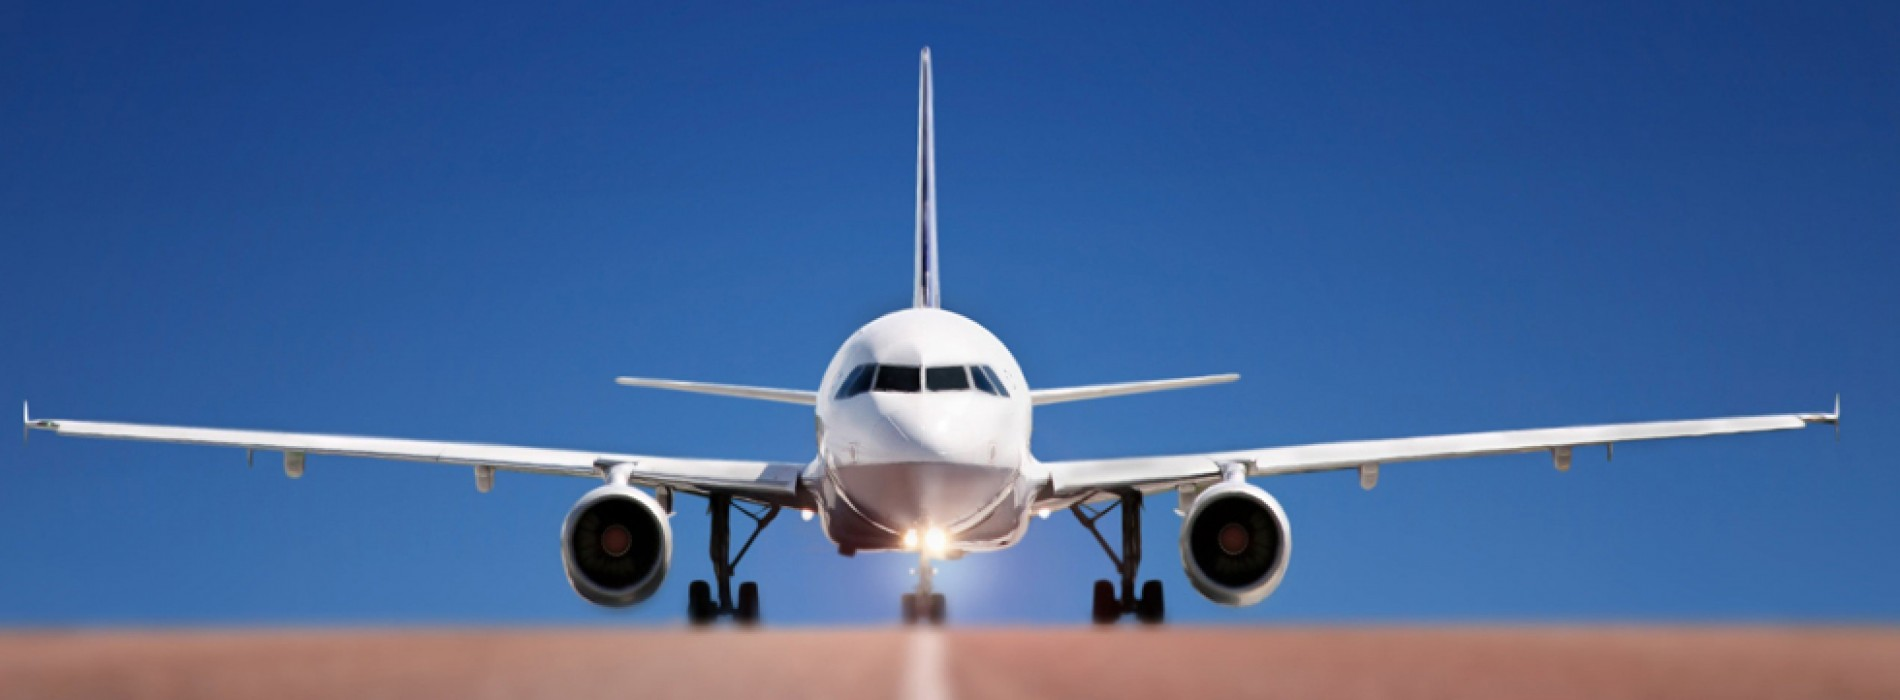 DGCA proposes alcohol test for flight crew at transit airports